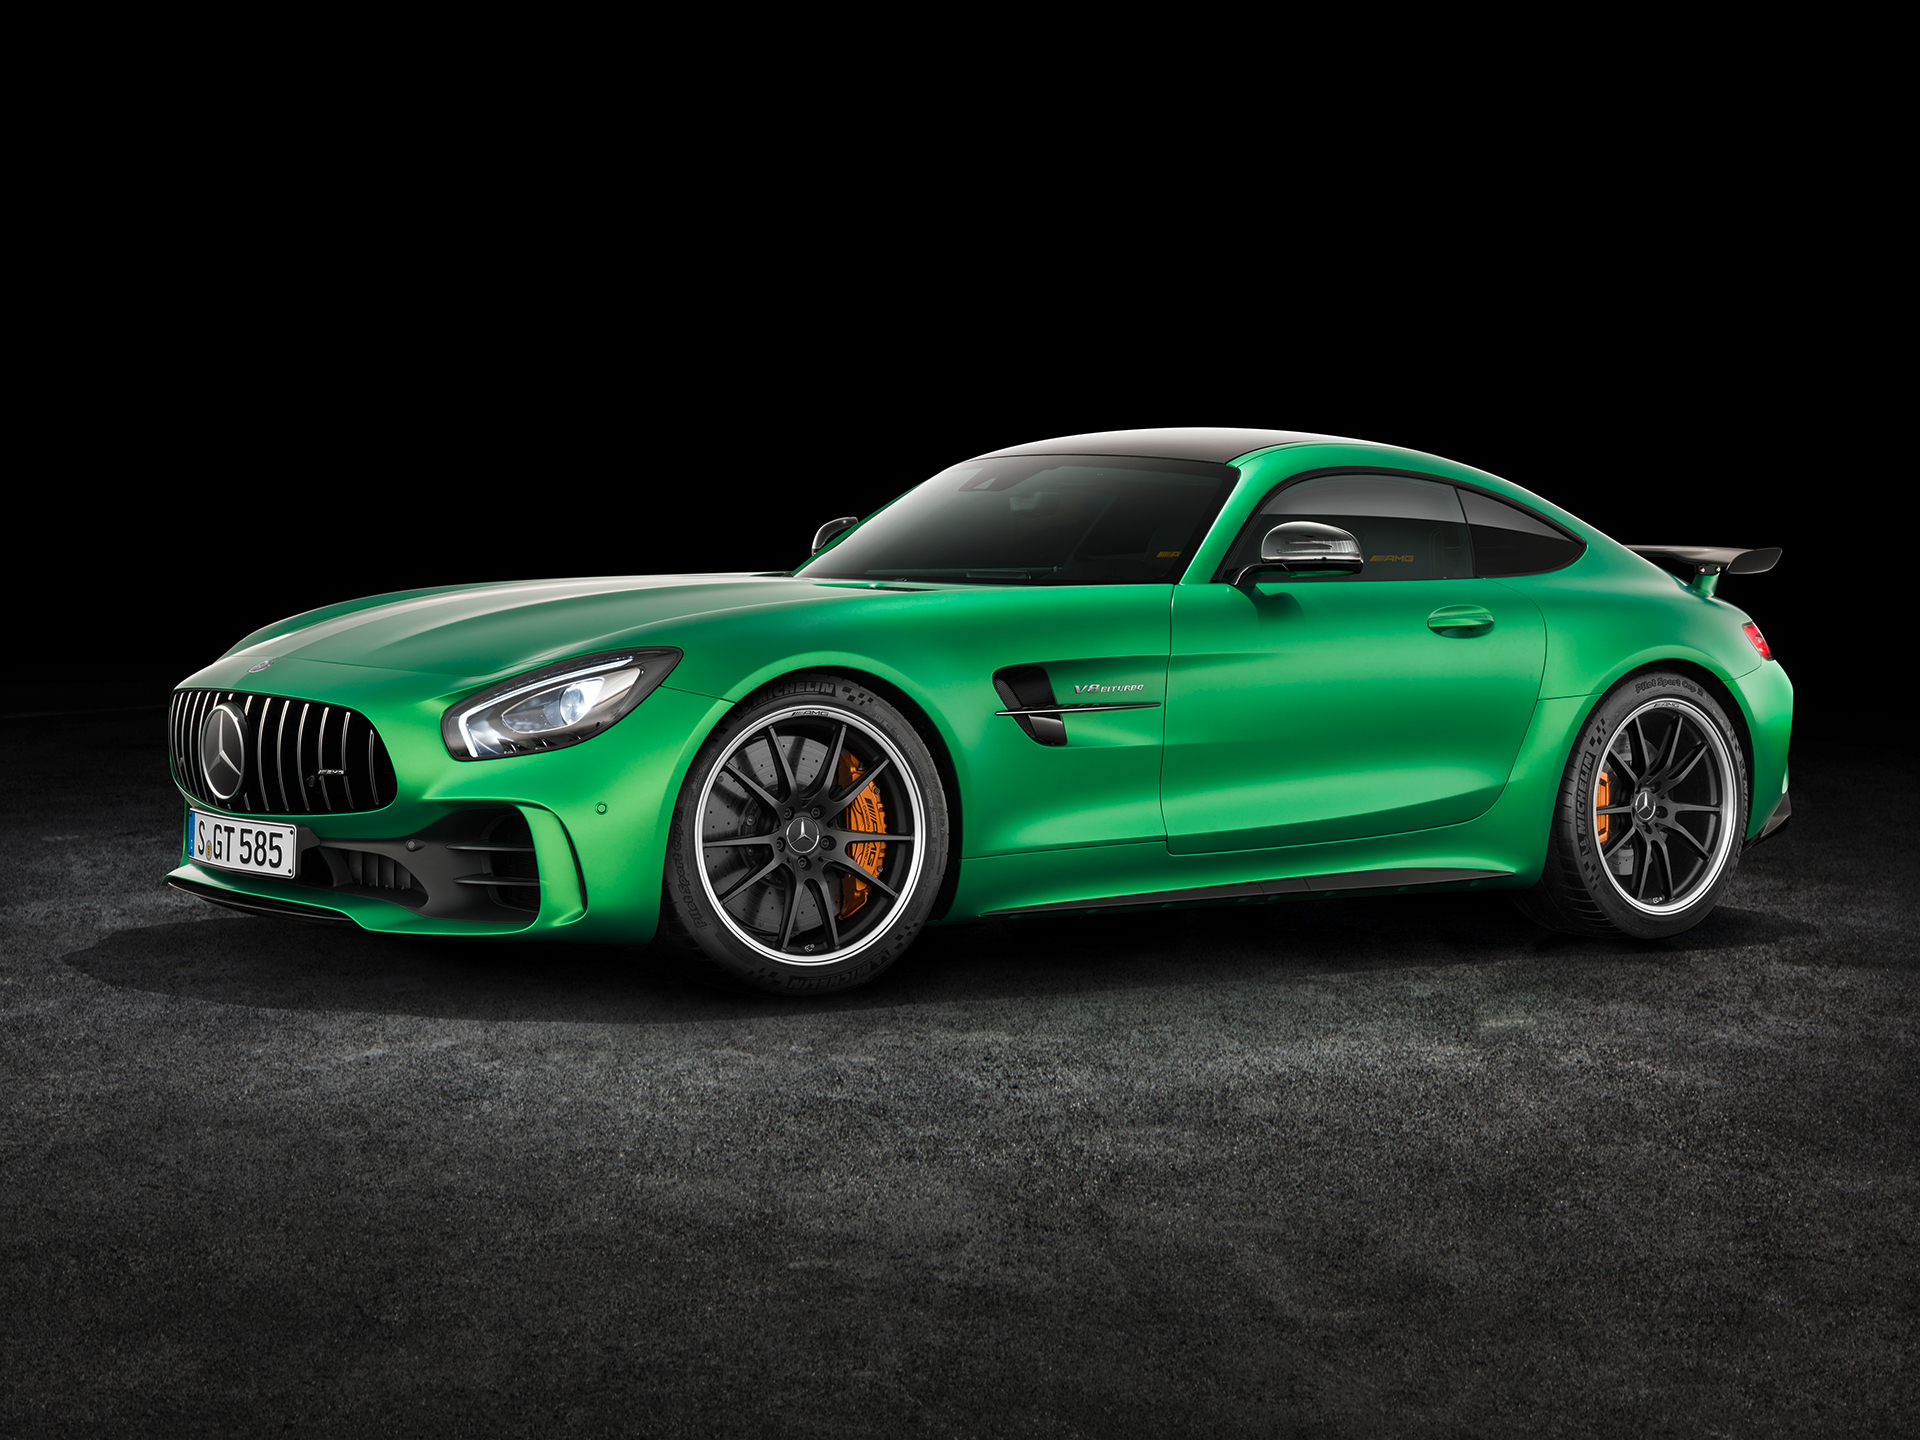 Mercedes-AMG GT R - 2016 - side-face / profil